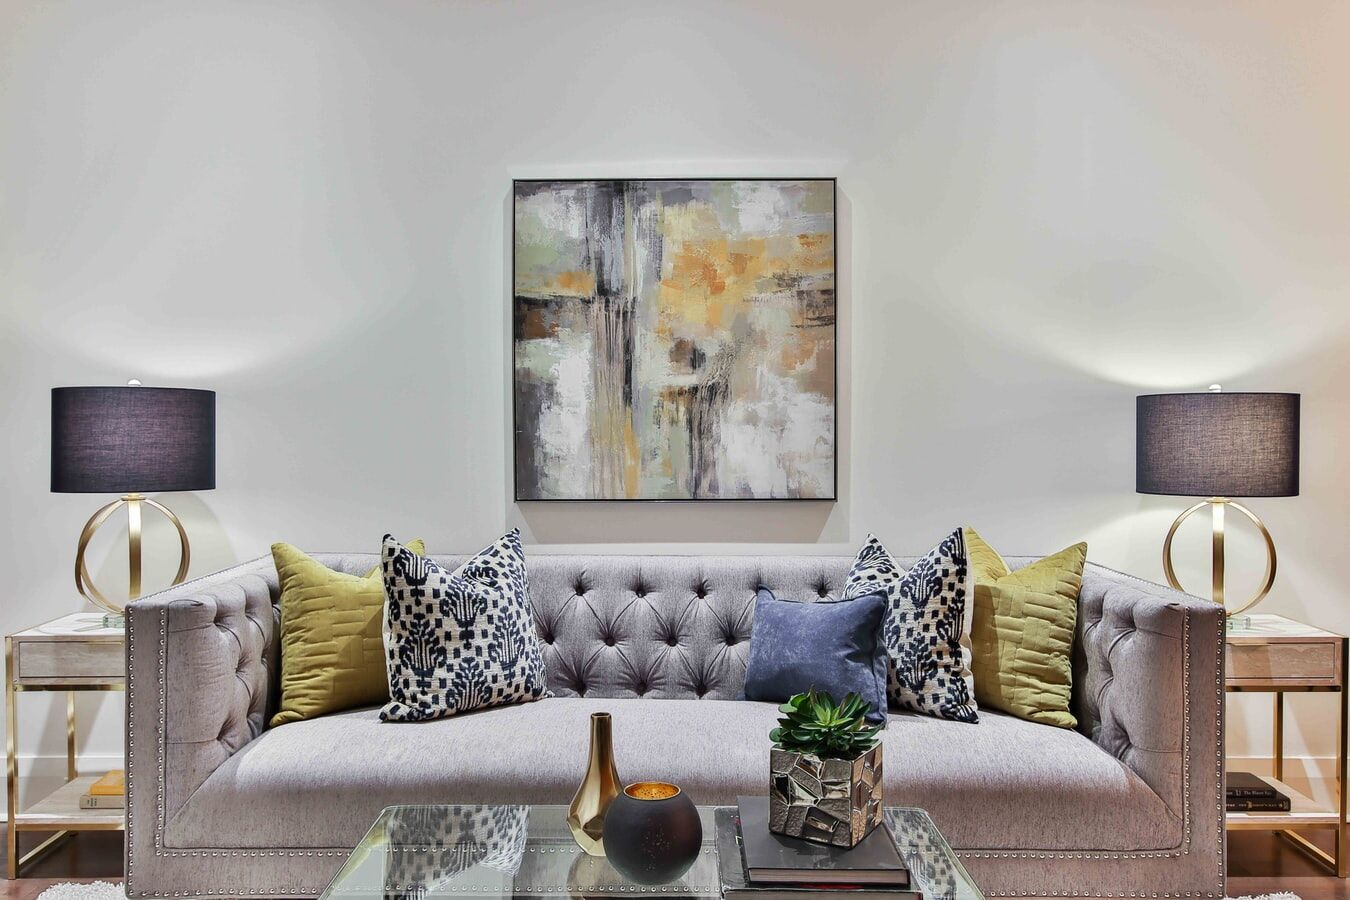 How to Easily Improve Your Living Room Decor